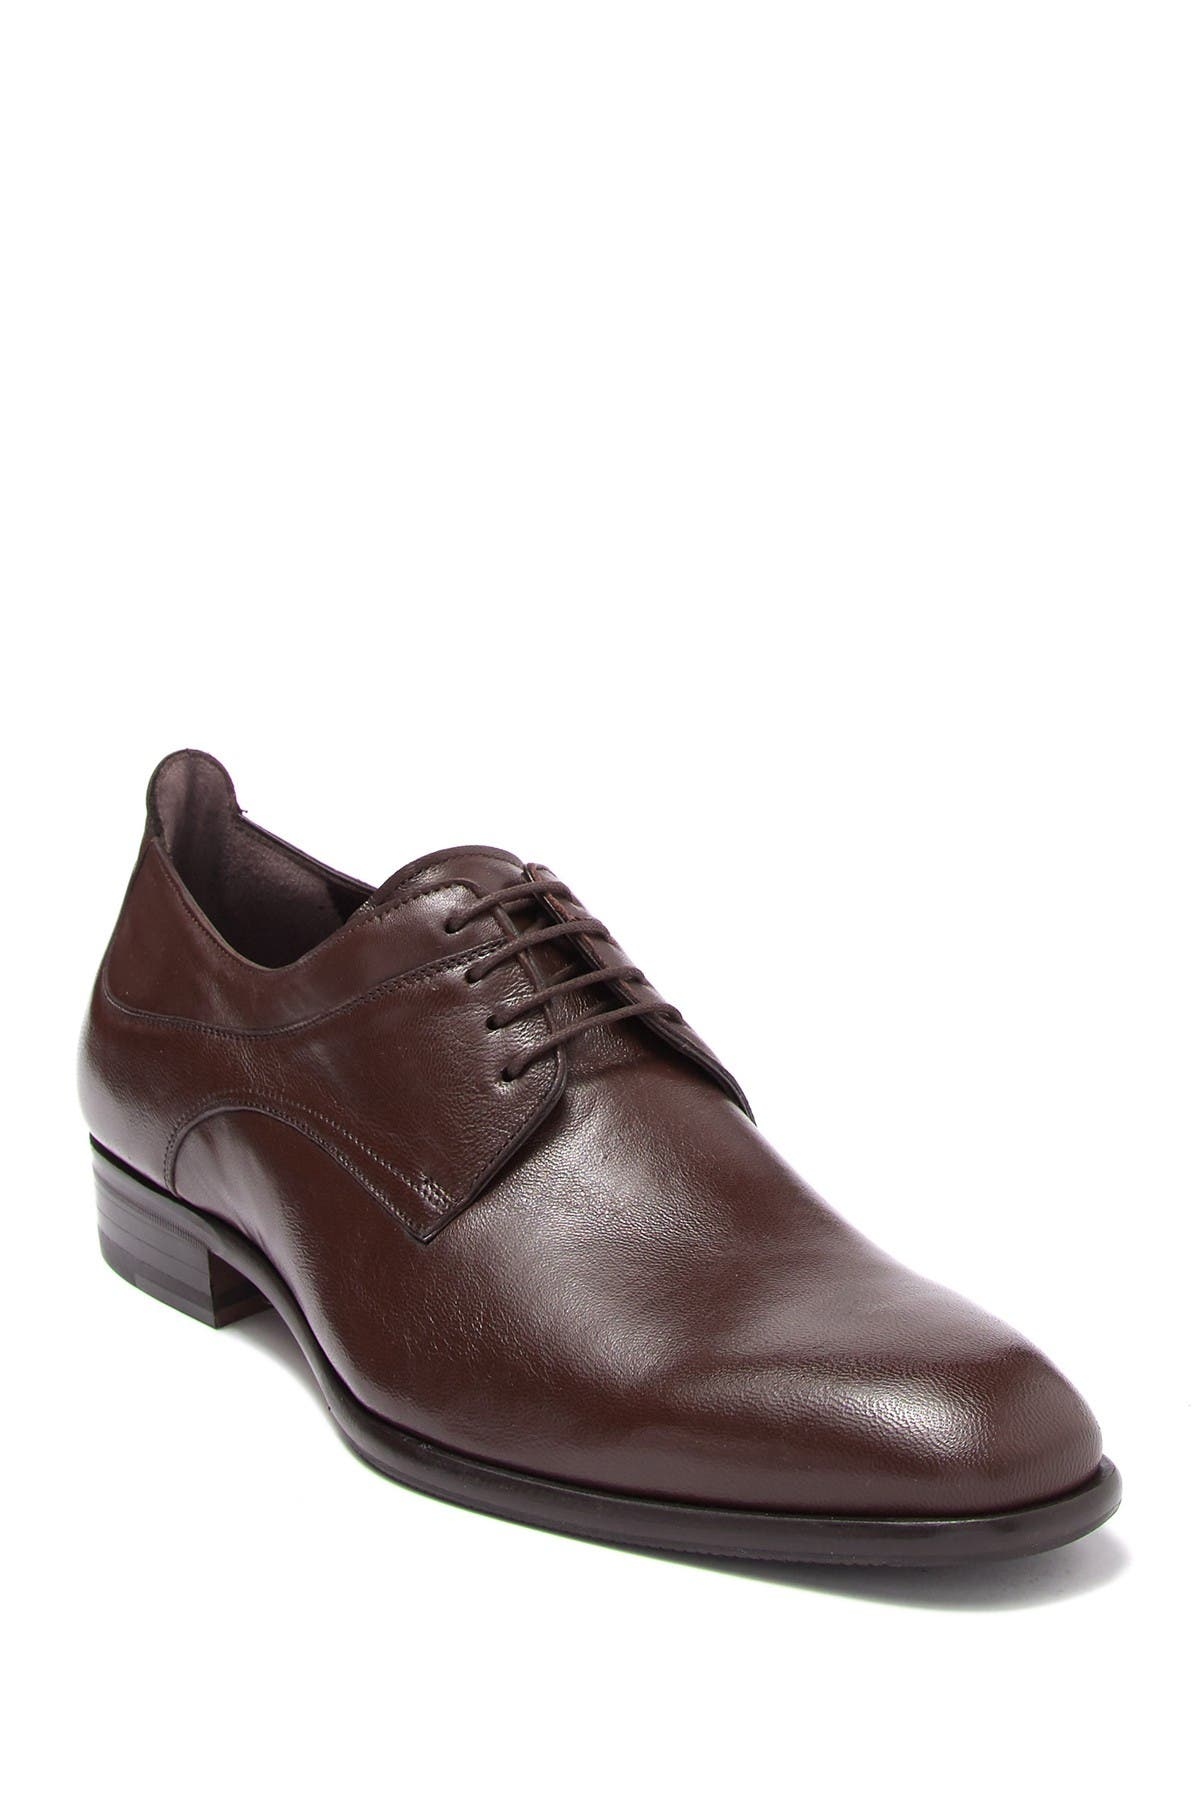 Image of Mezlan Leather Derby